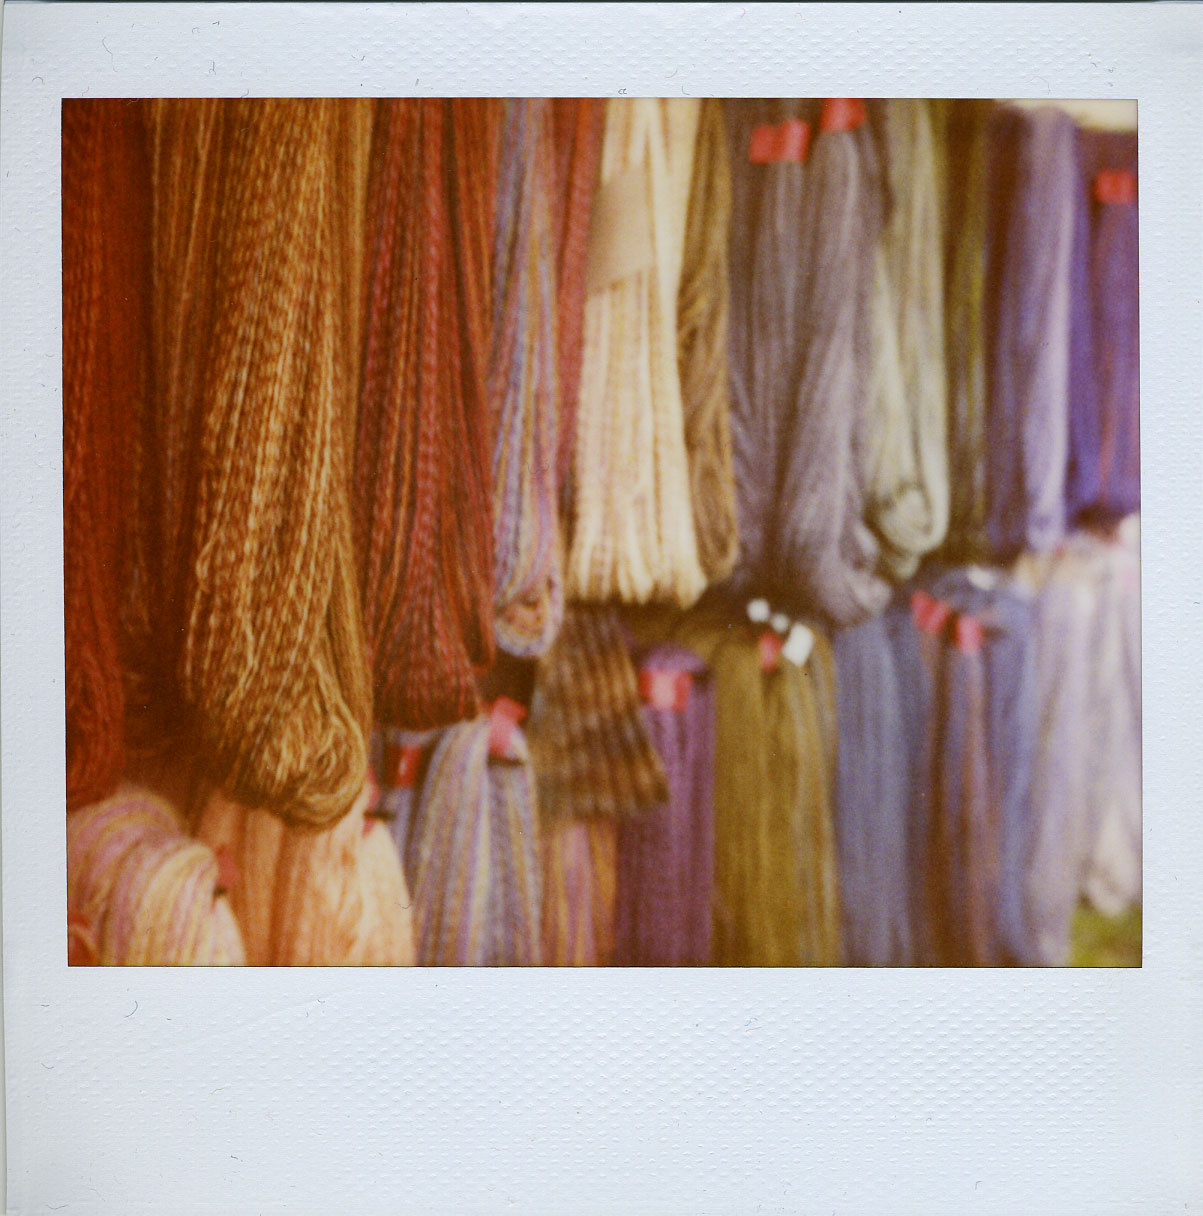 'roid week 2009: sheep & wool fest (mon)